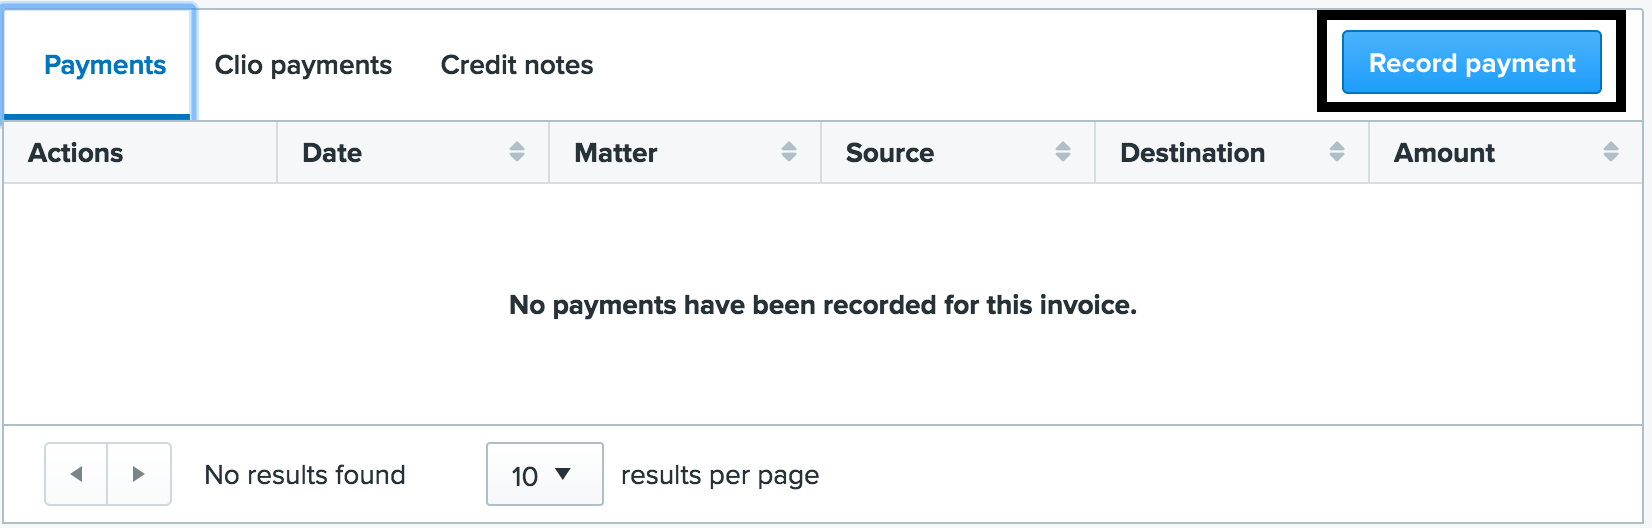 Record_Payment_Button.png